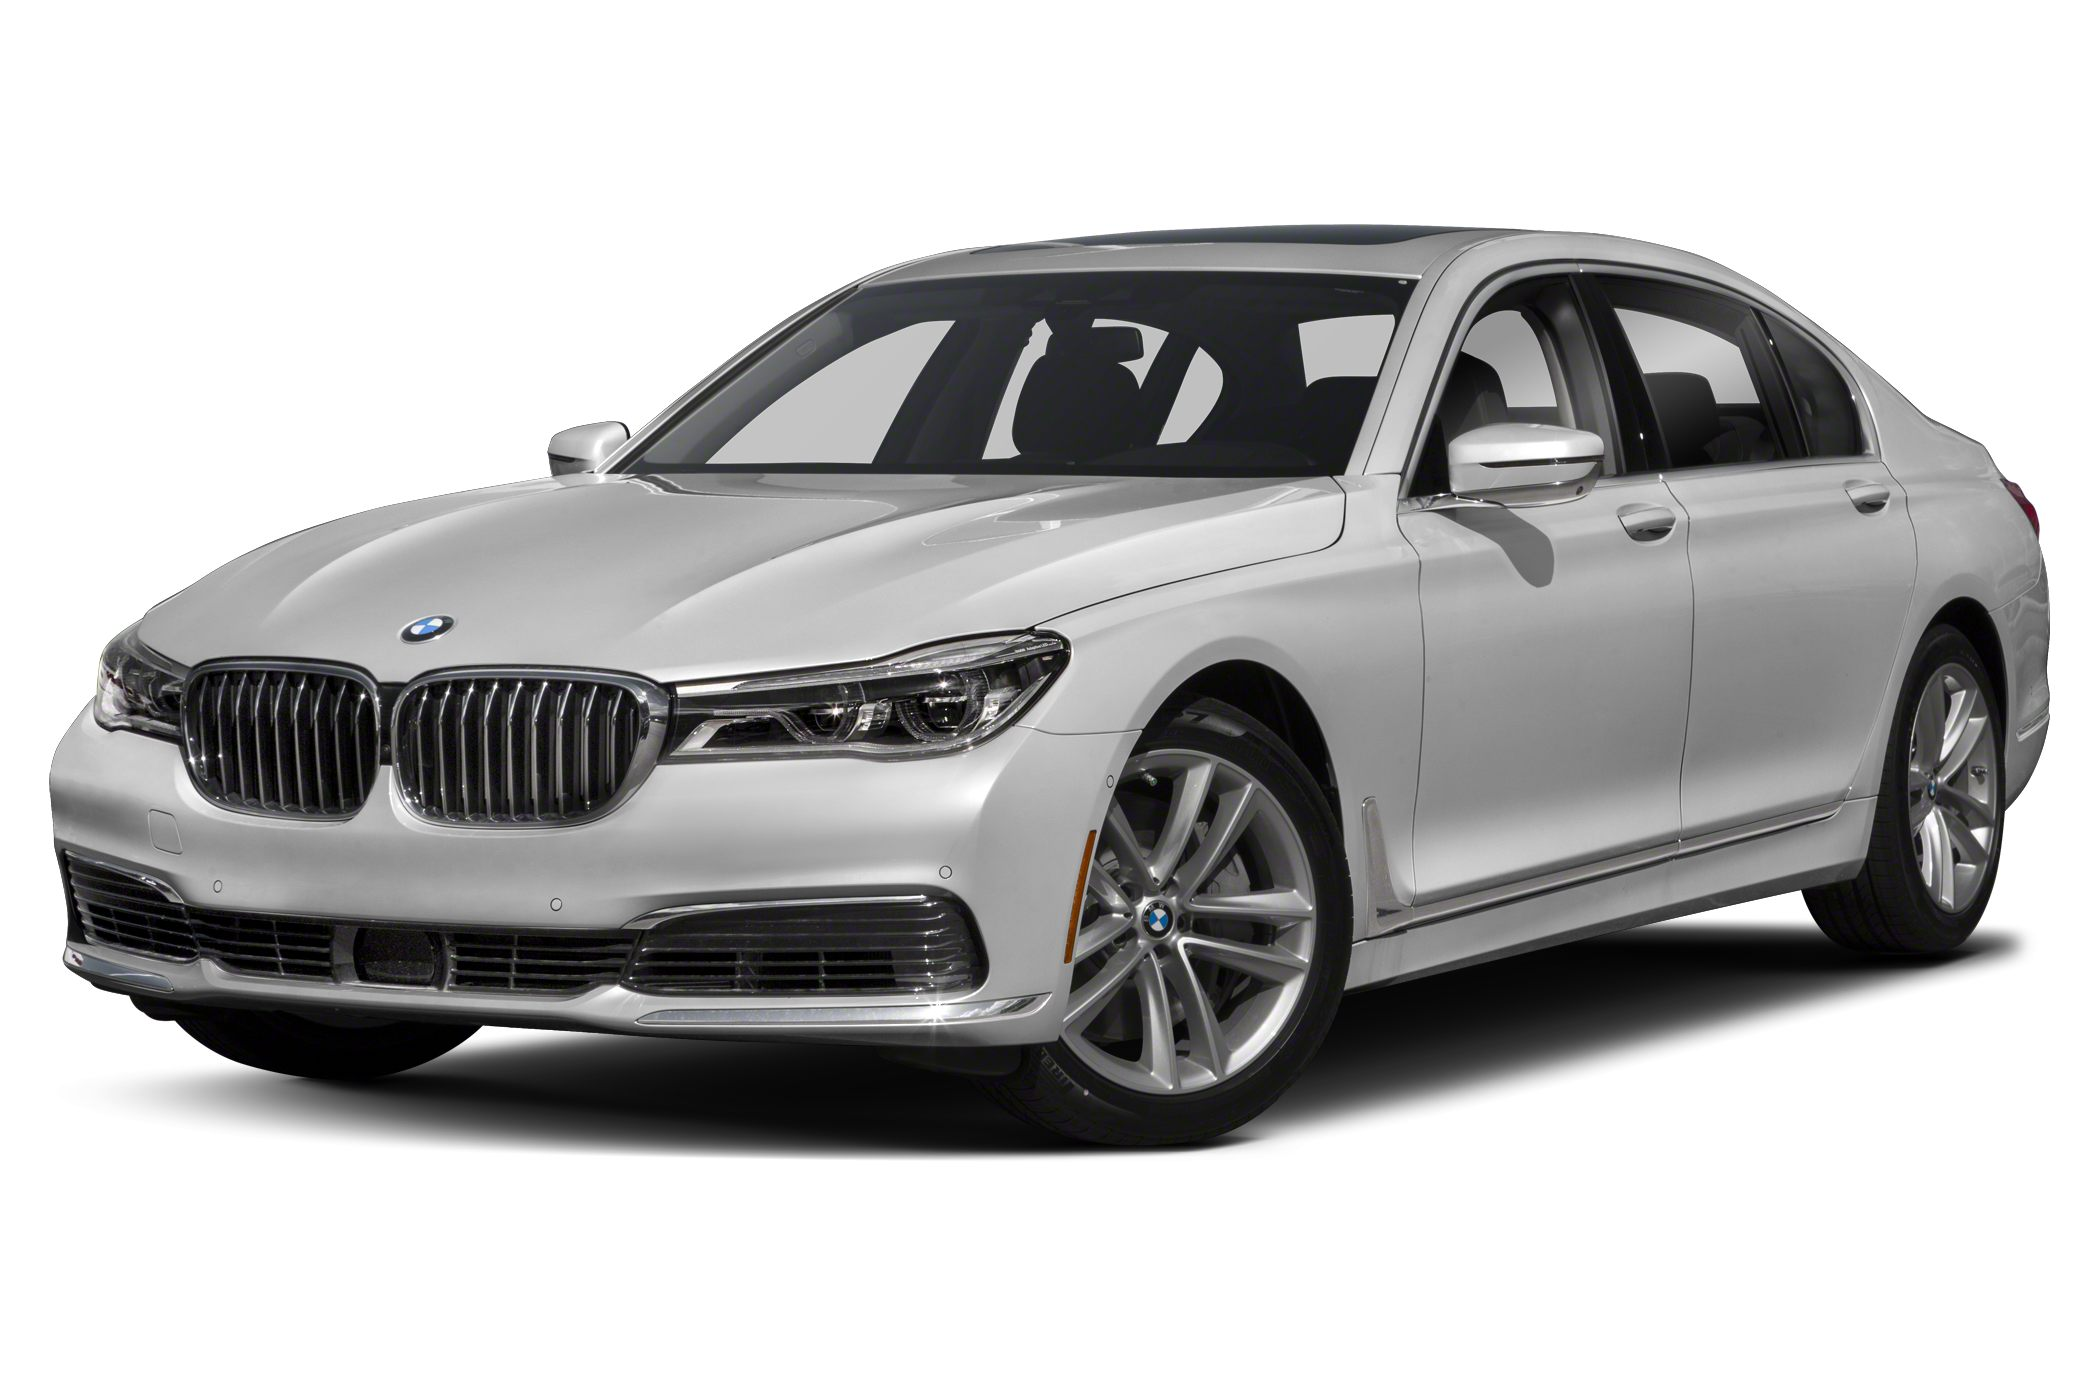 2019 BMW 750 i xDrive 4dr All wheel Drive Sedan Pricing and Options